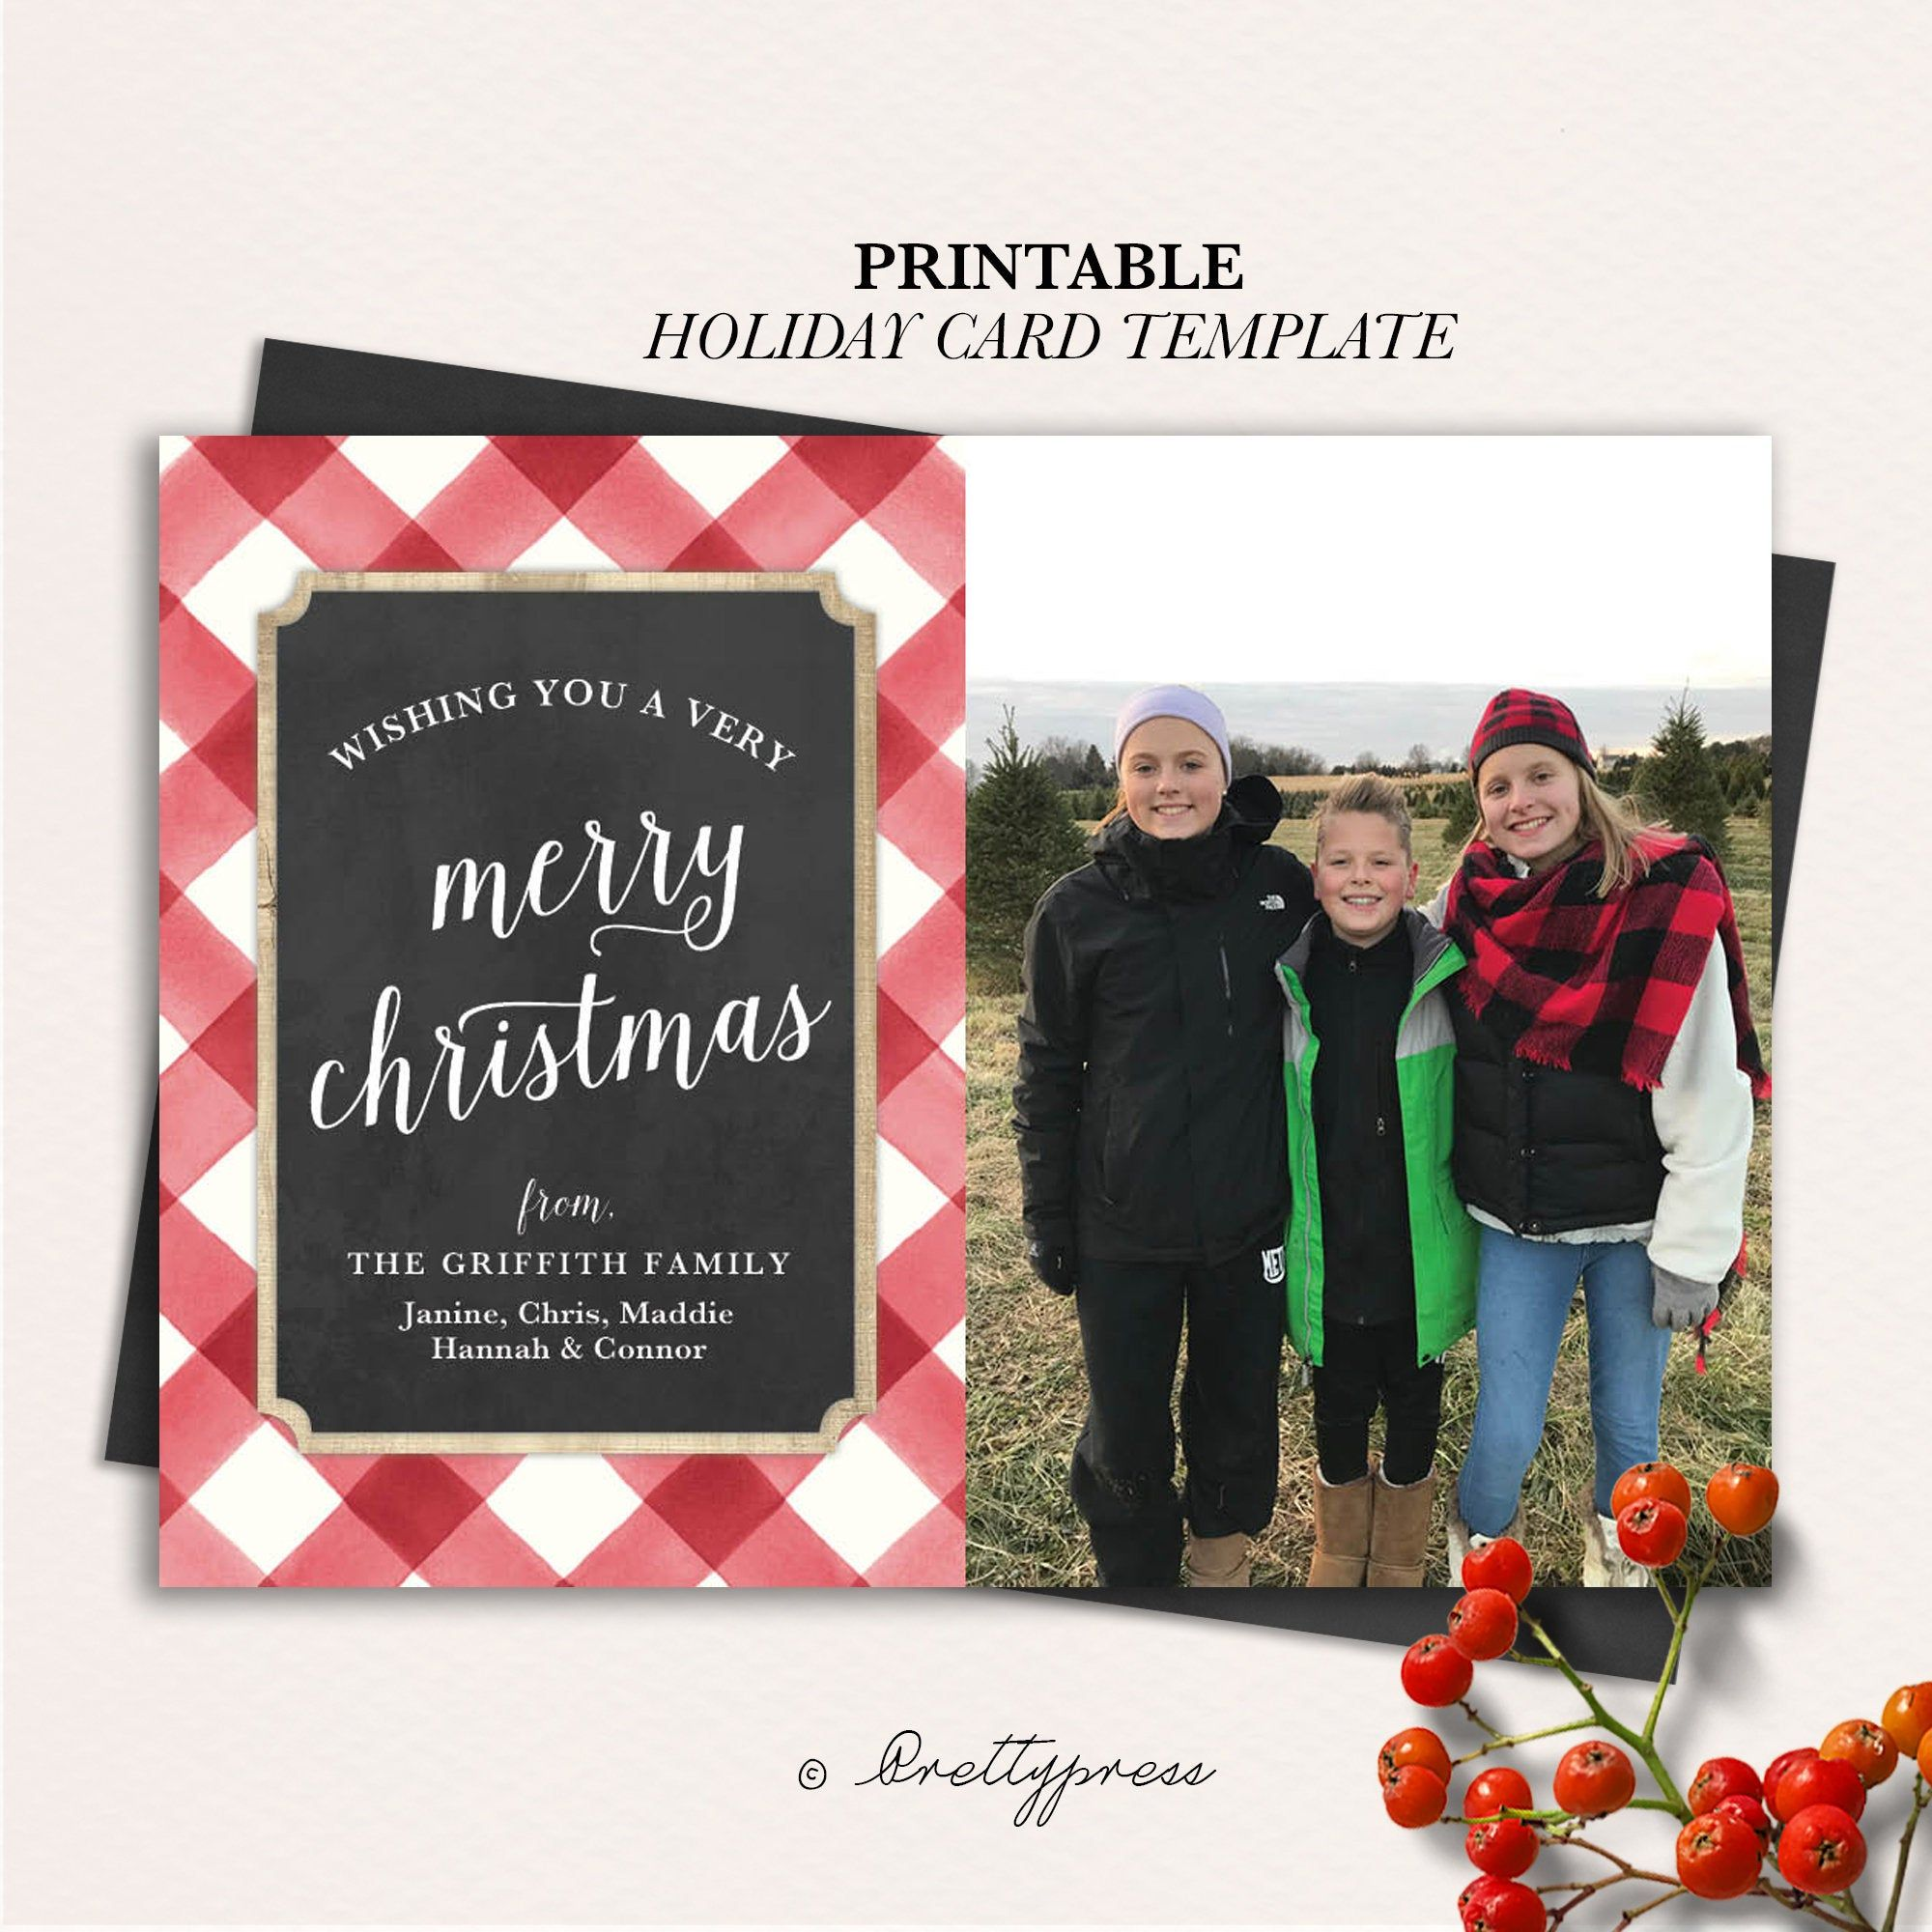 Christmas Photo Card Template Buffalo Check Christmas Card Etsy Christmas Photo Card Template Photo Card Template Holiday Card Template